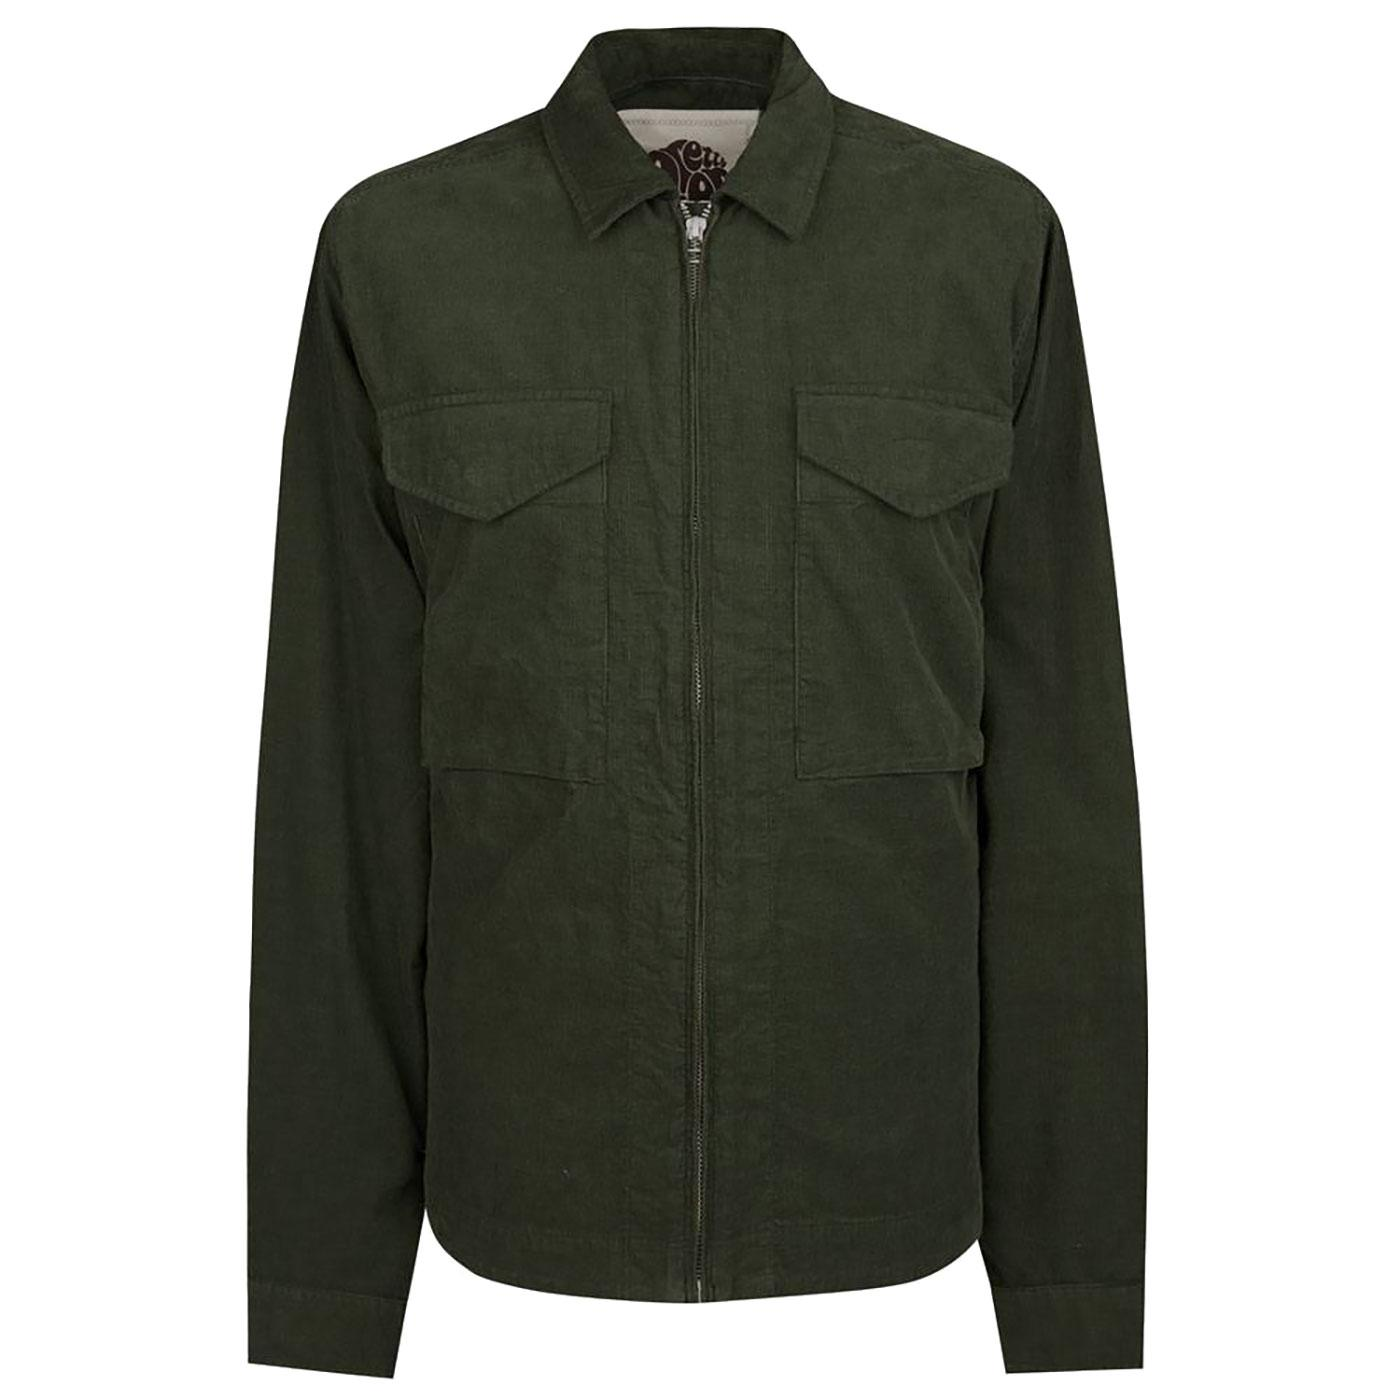 PRETTY GREEN Retro Zip Up Cord Overshirt Jacket